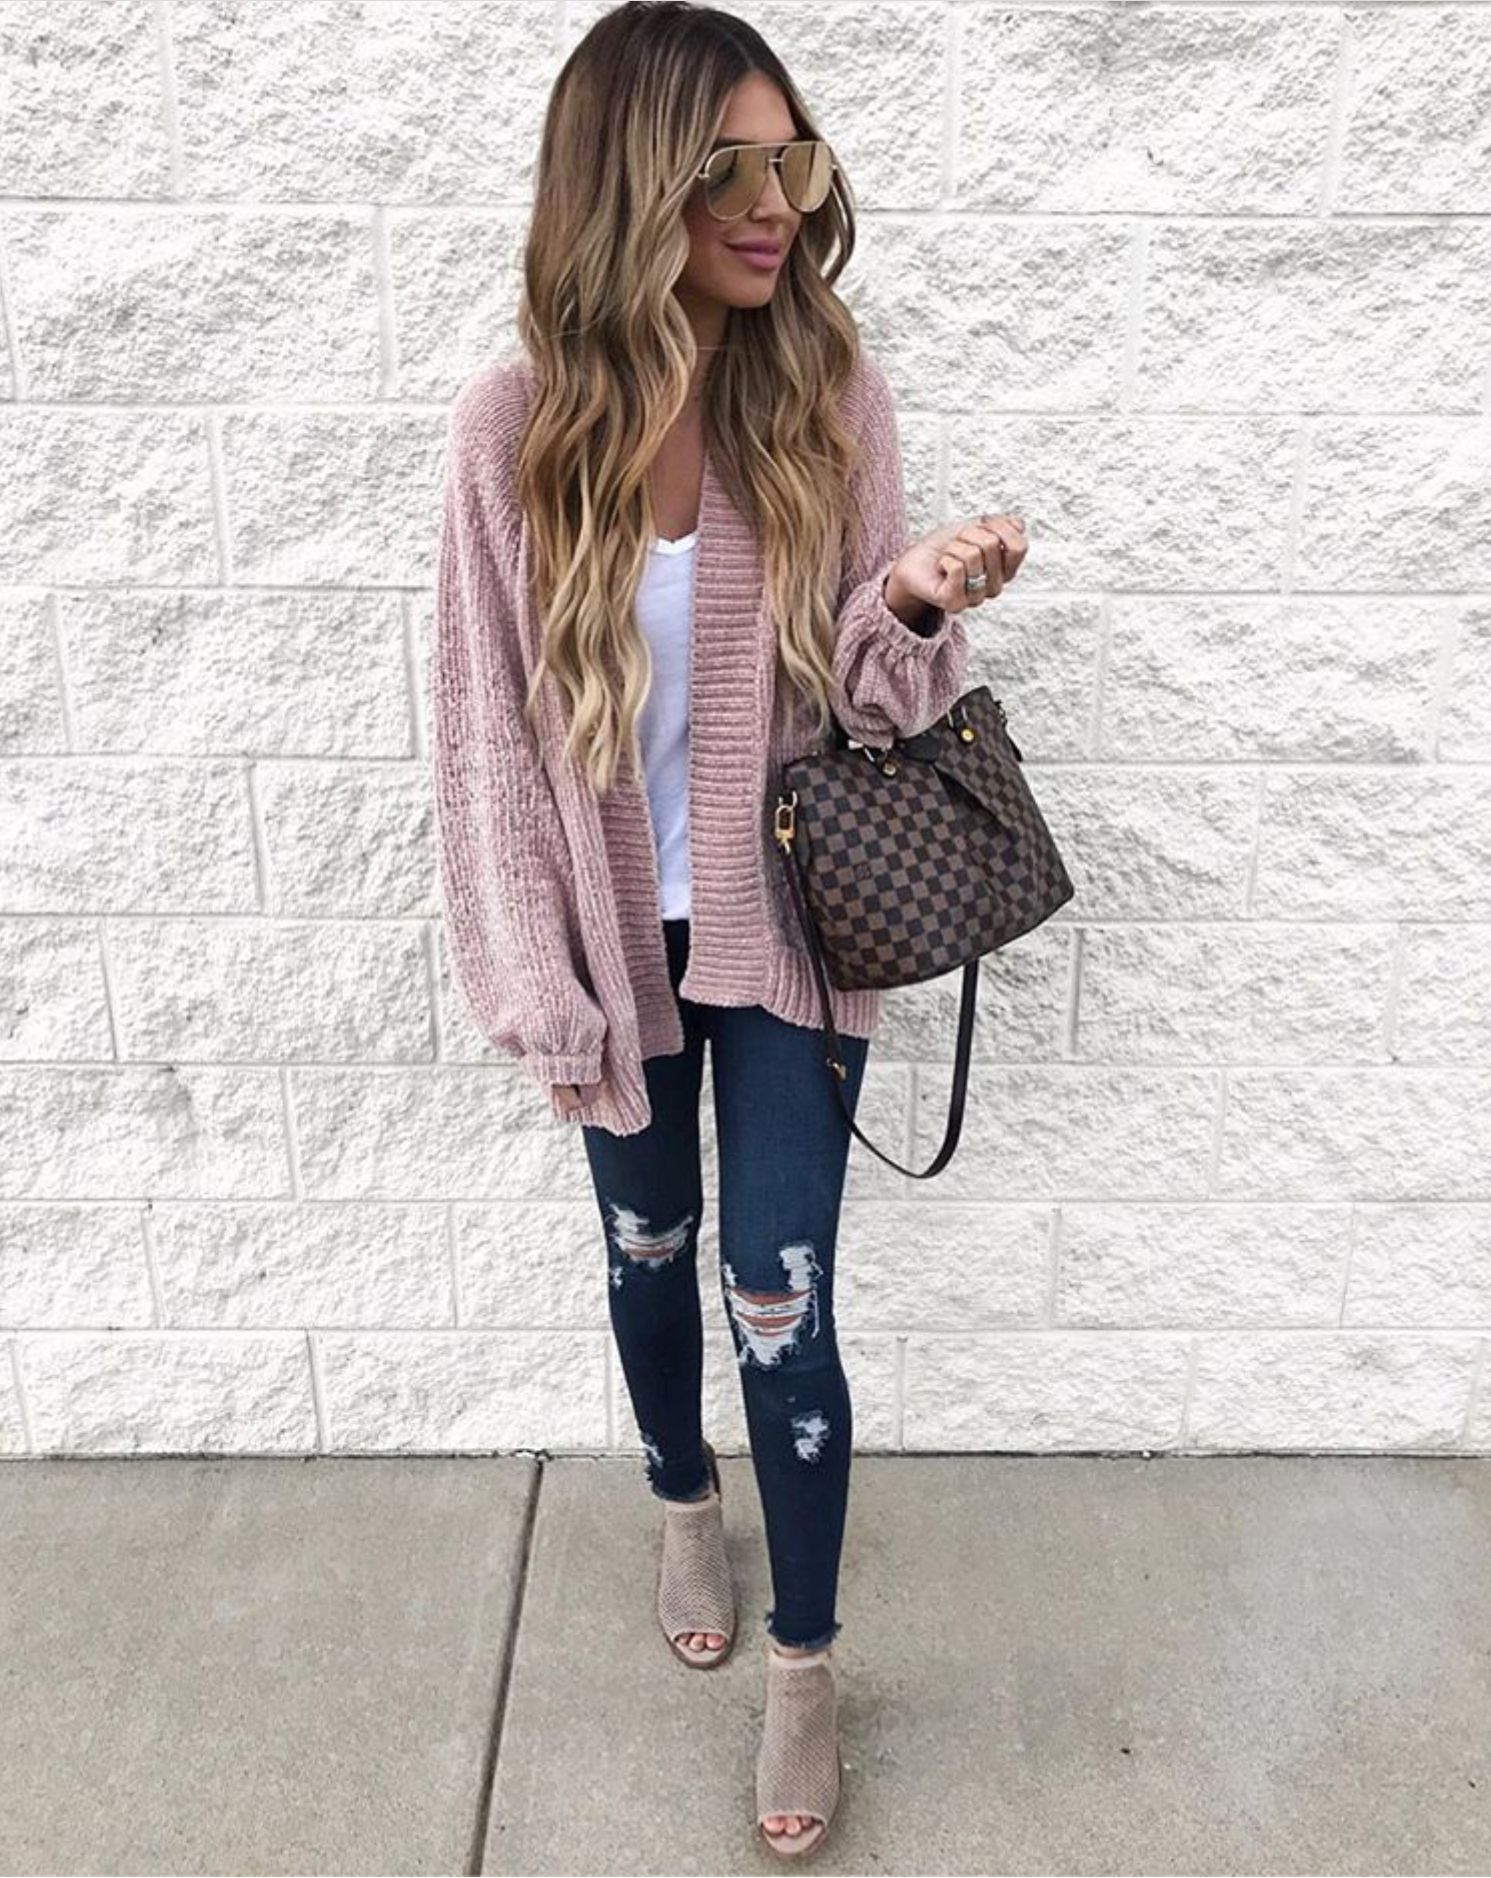 Pin by Mina Kahumoku on ᗰY ᔕTYᒪE ᑭᗩᖇT 2 | Dinner outfit